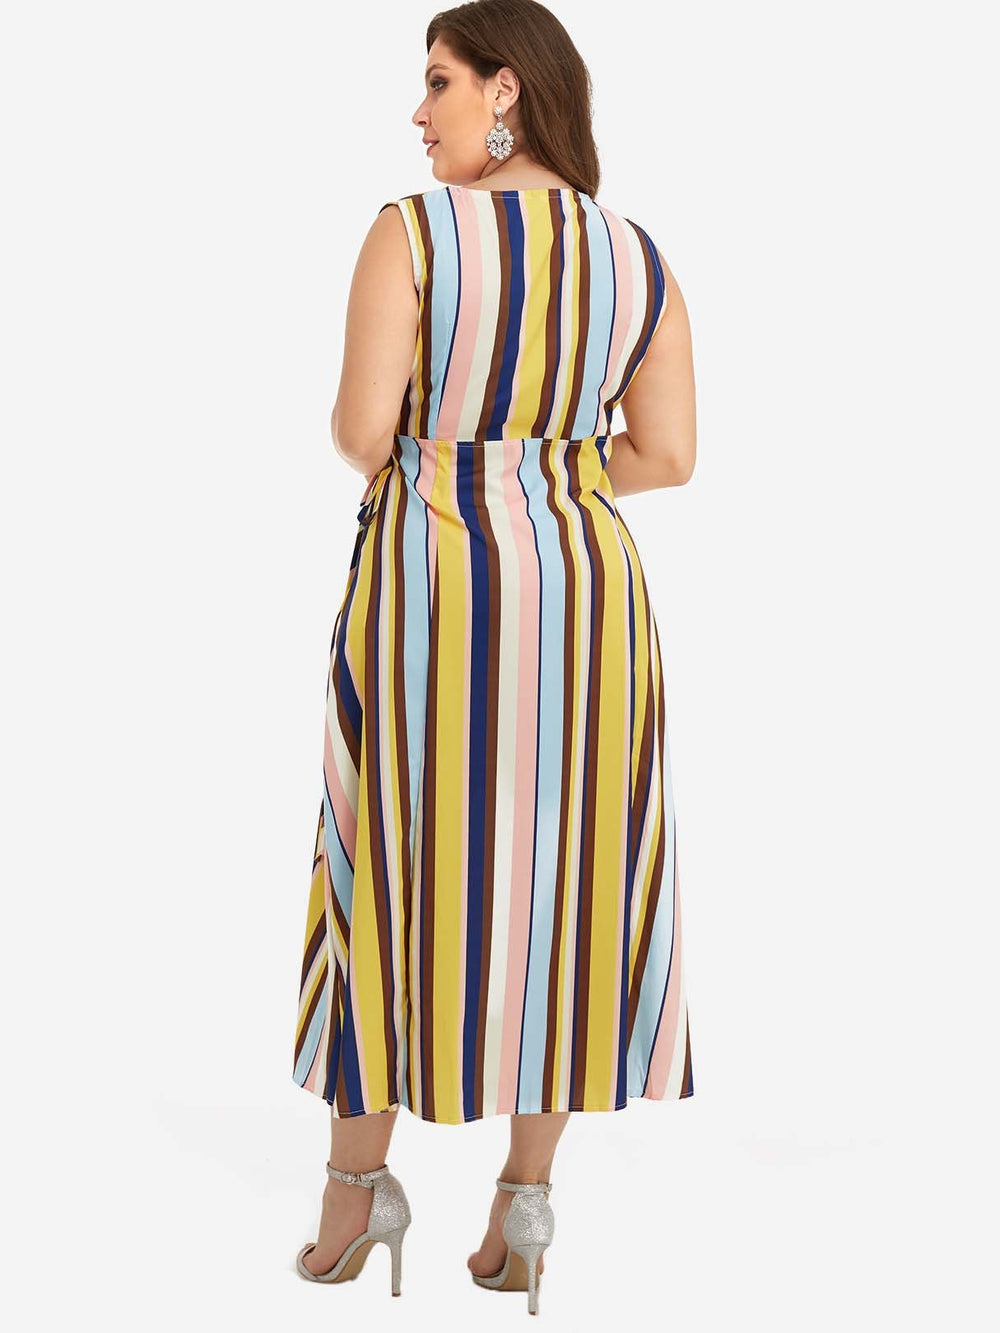 Womens Striped Plus Size Dresses